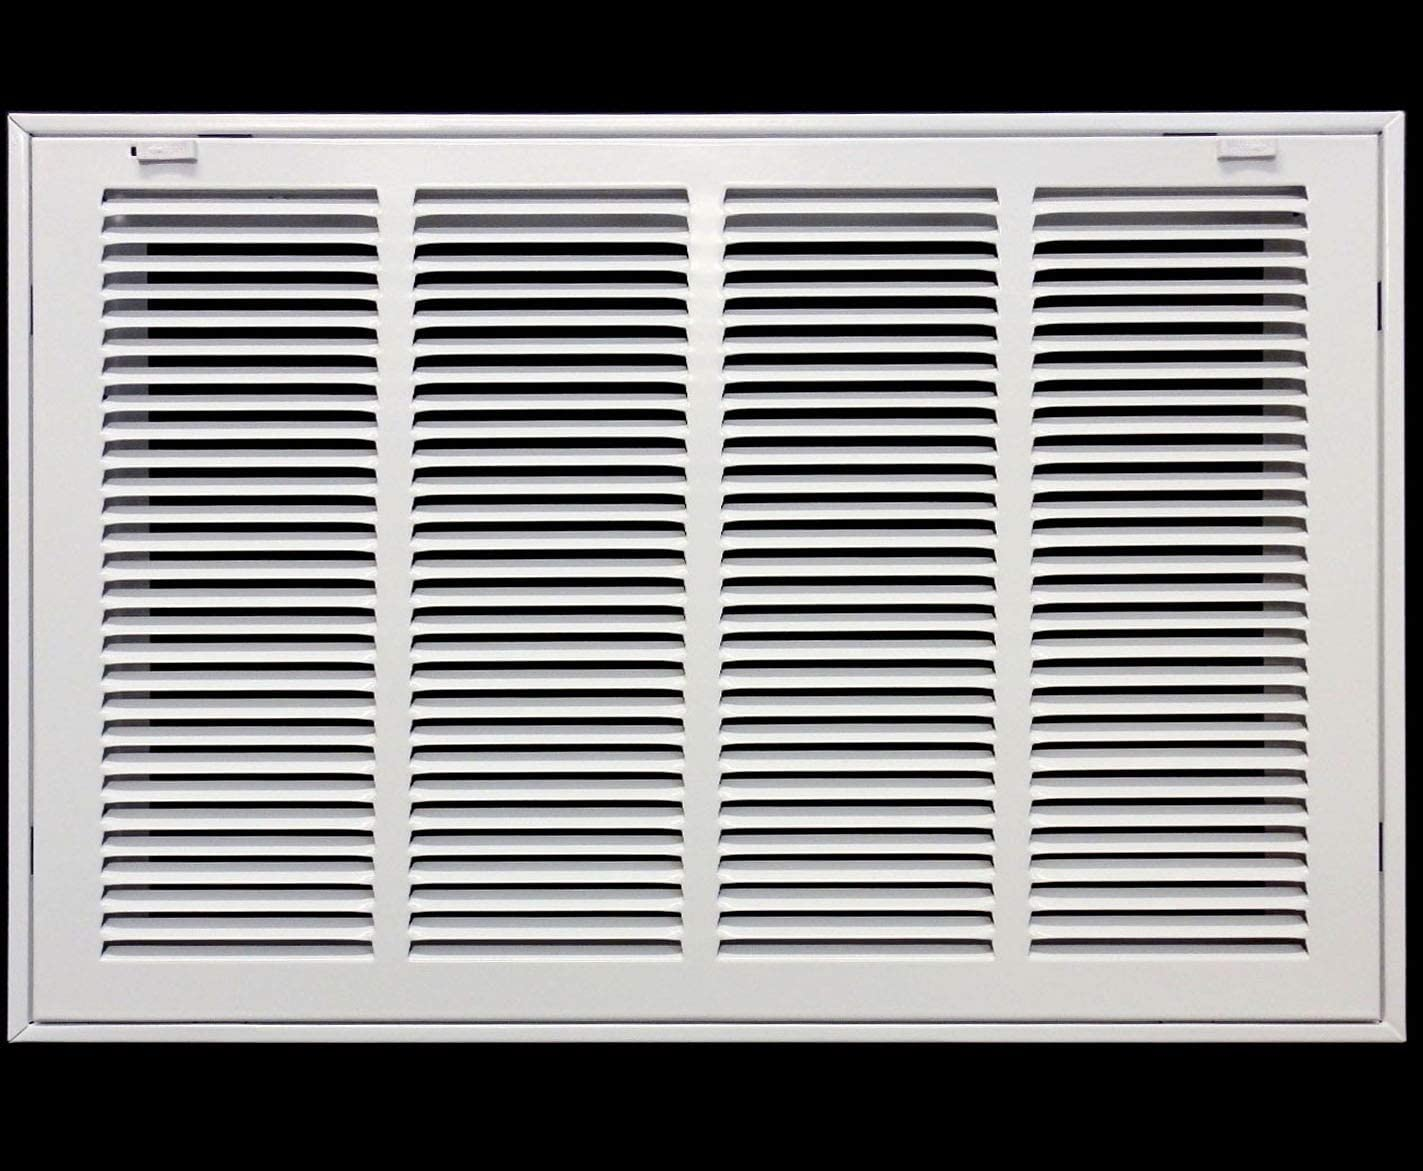 """22"""" X 16"""" Steel Return Air Filter Grille for 1"""" Filter - Removable Face/Door - HVAC Duct Cover - Flat Stamped Face -White [Outer Dimensions: 23.75w X 17.75h]"""